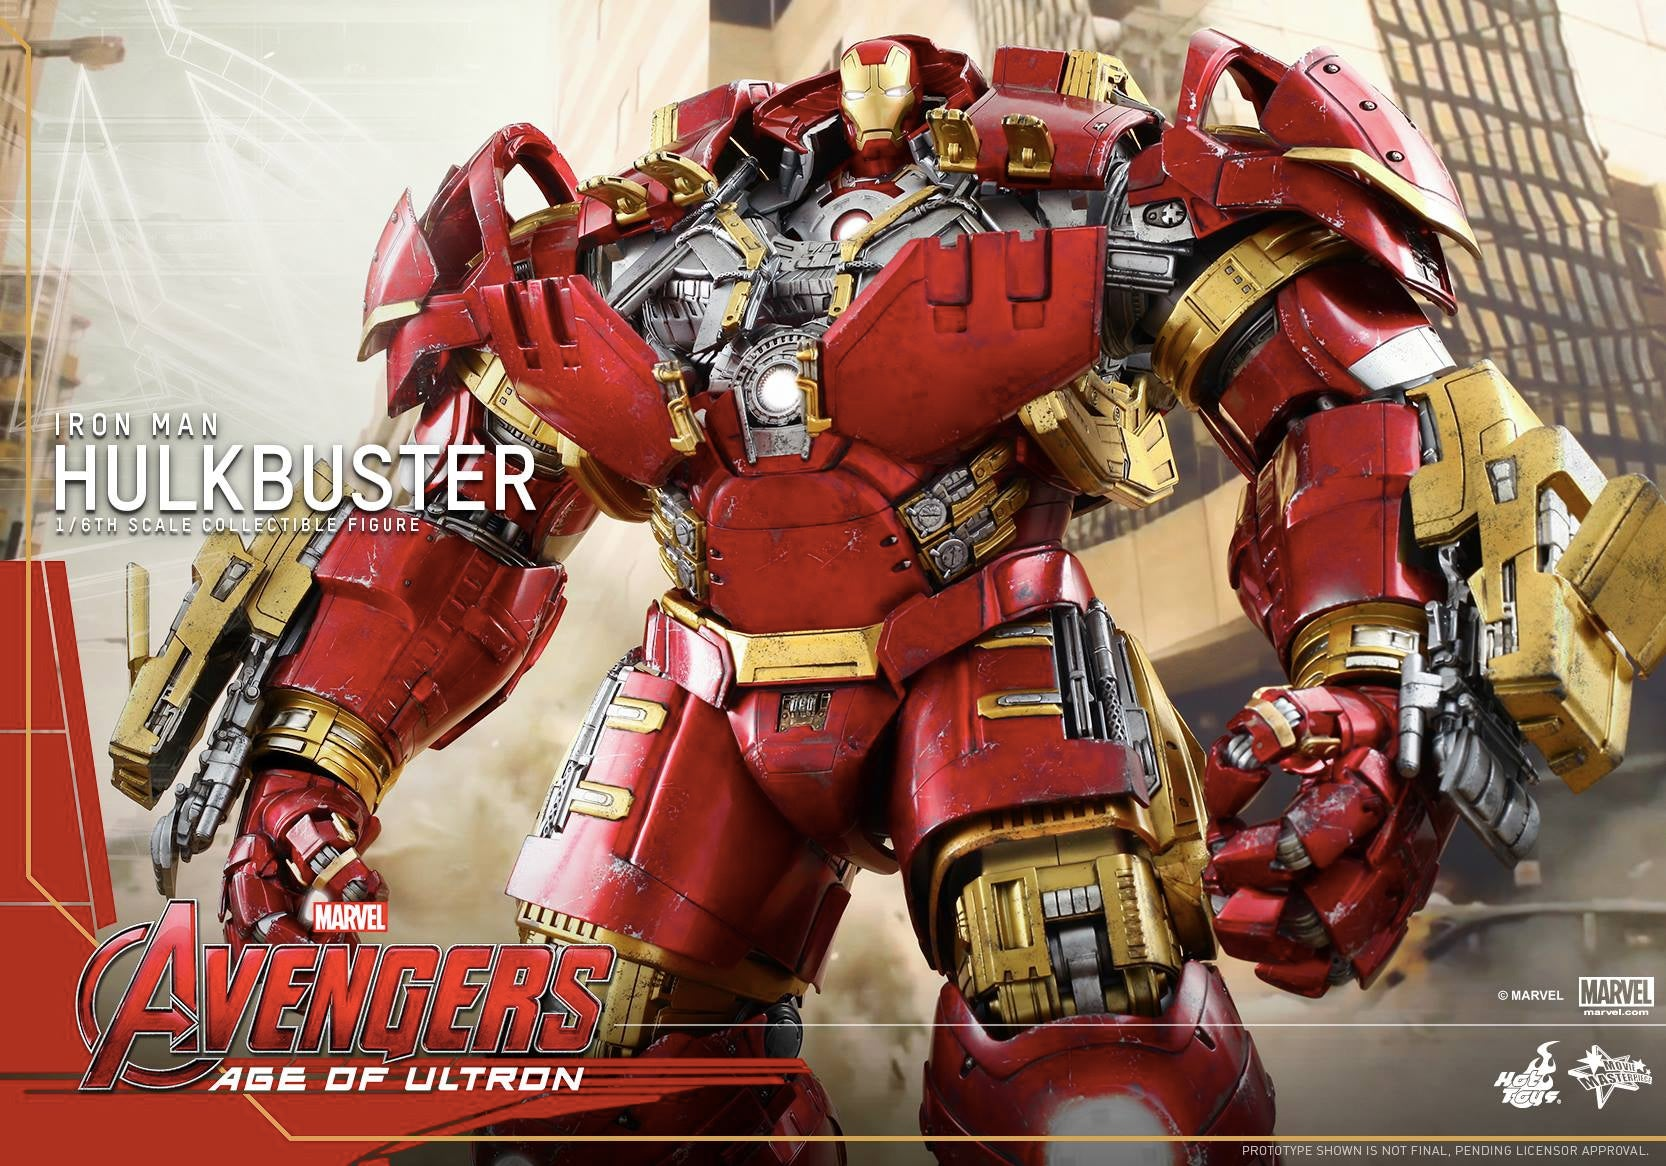 It Turns Out There's Even a Tiny Iron Man Inside That Hulkbuster Figure